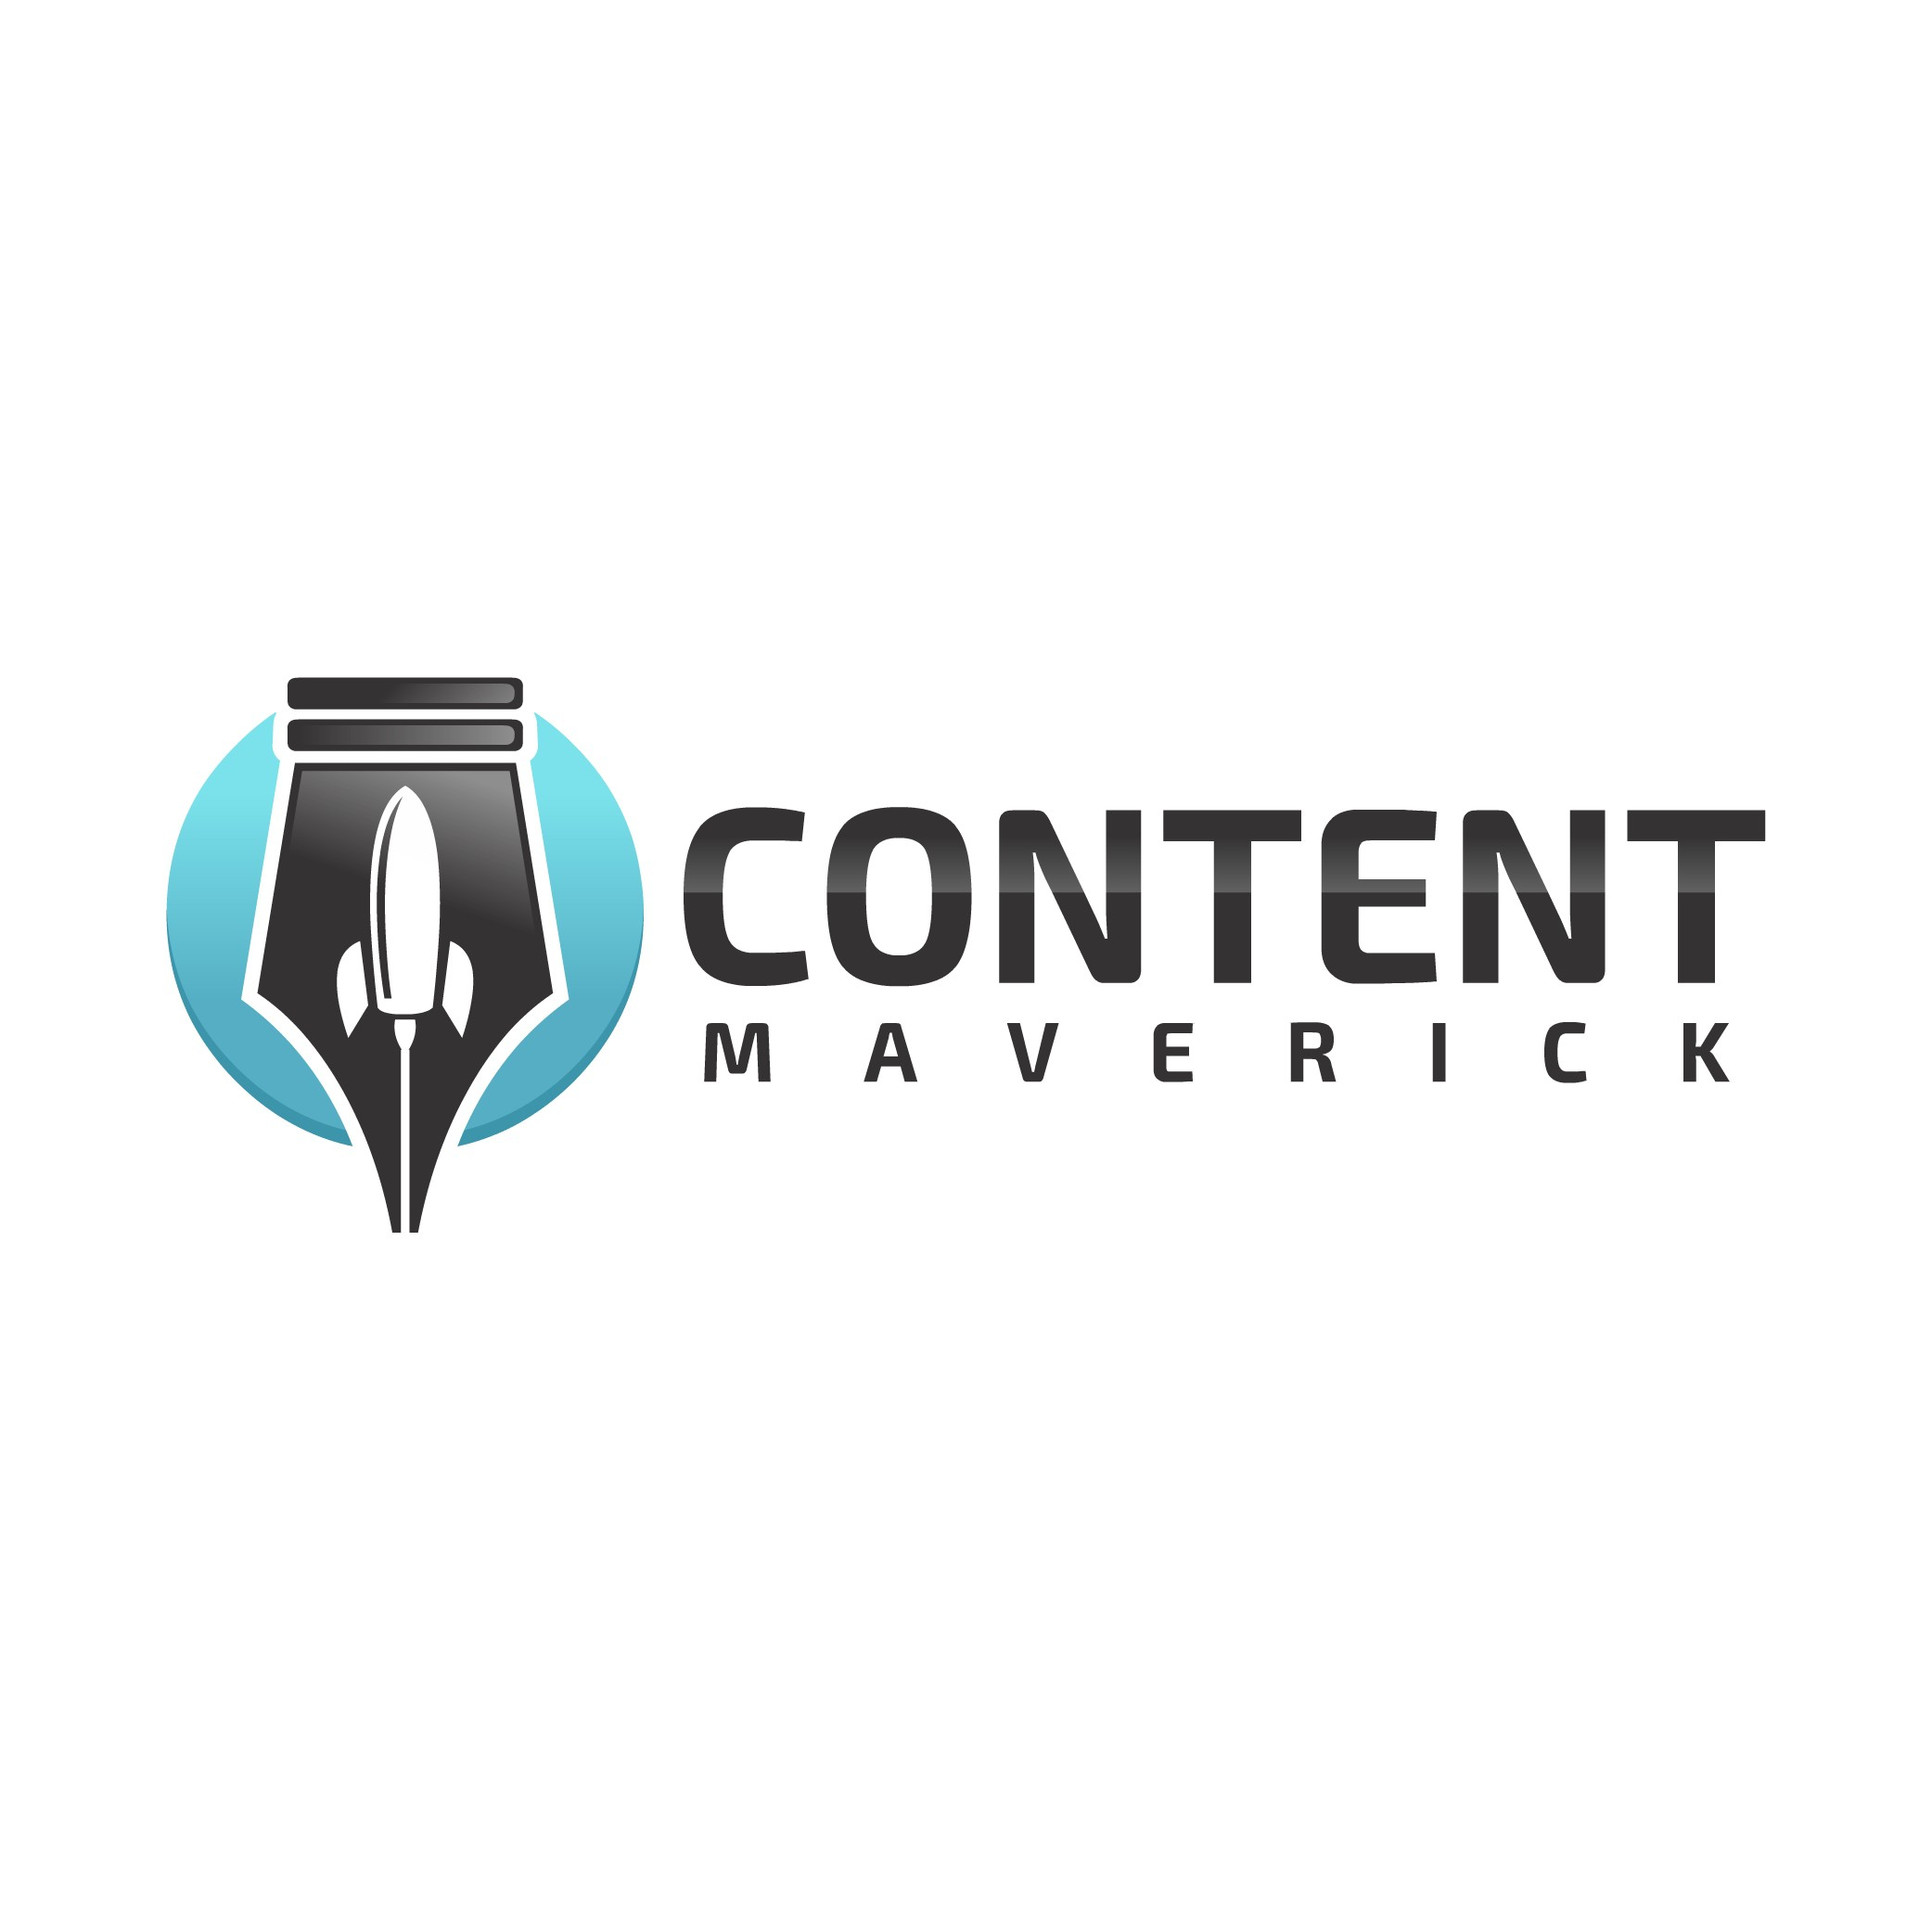 Easy Logo Design Contest For Content Marketing Service